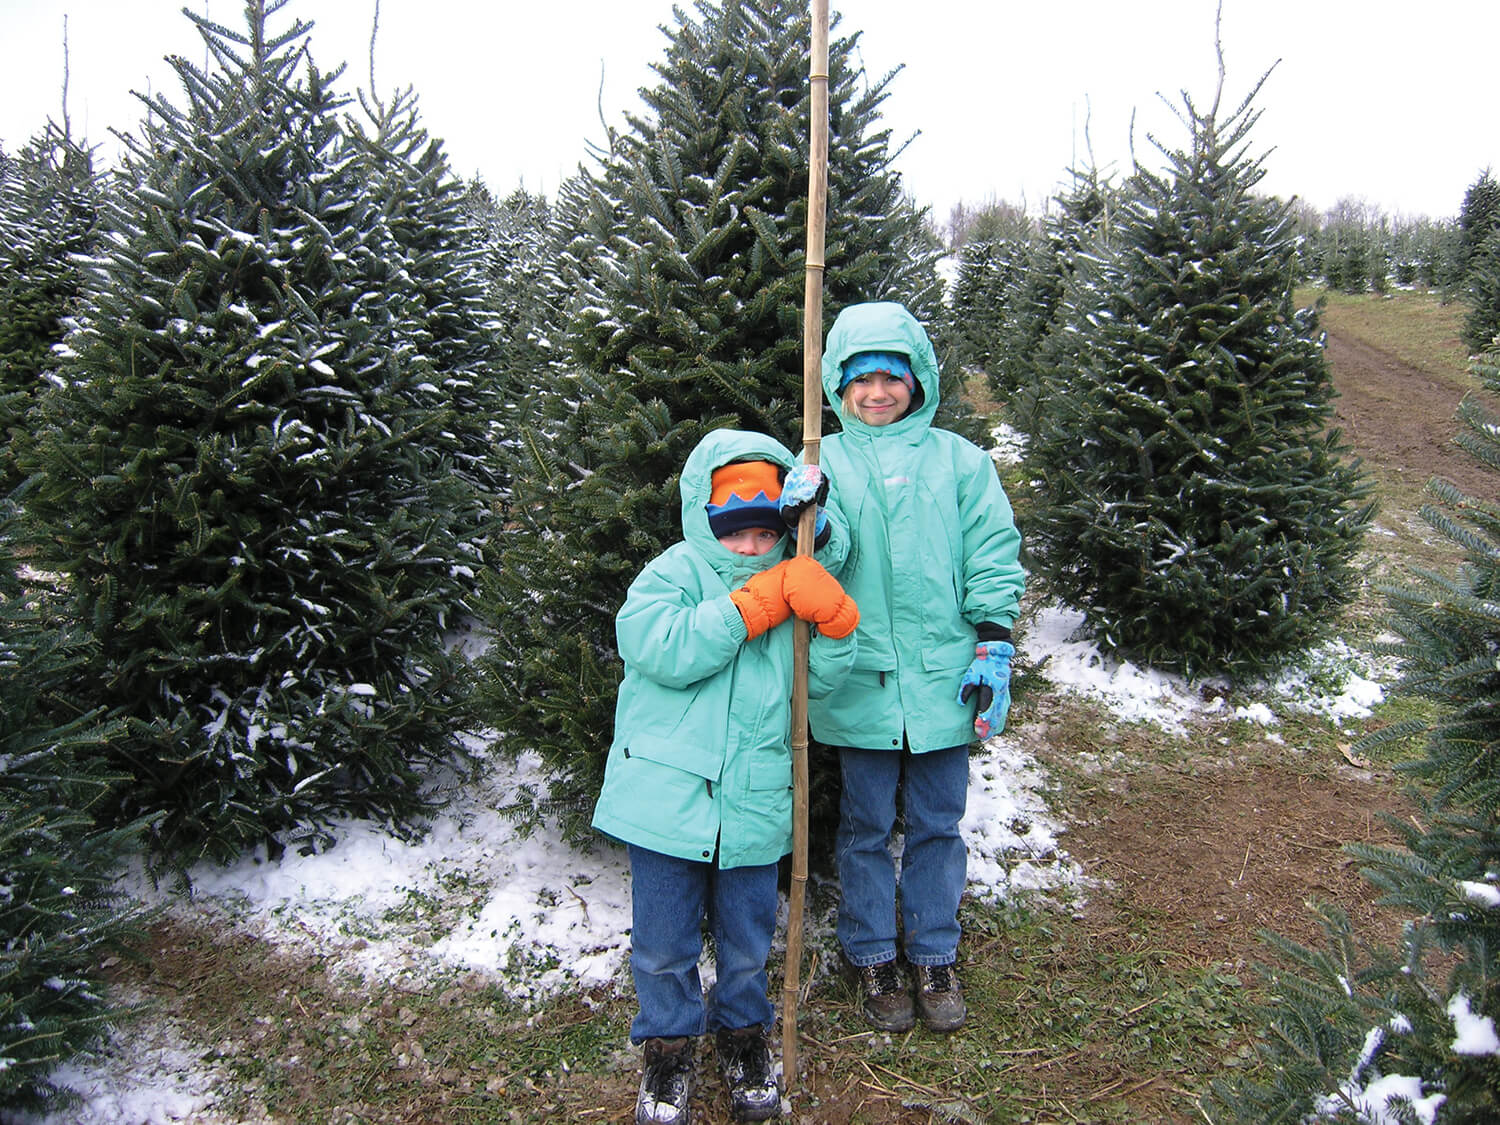 The Nickens family's tradition began in 2003, with Jack and Markie Nickens — and a cane-pole measuring stick — in the North Carolina High Country.